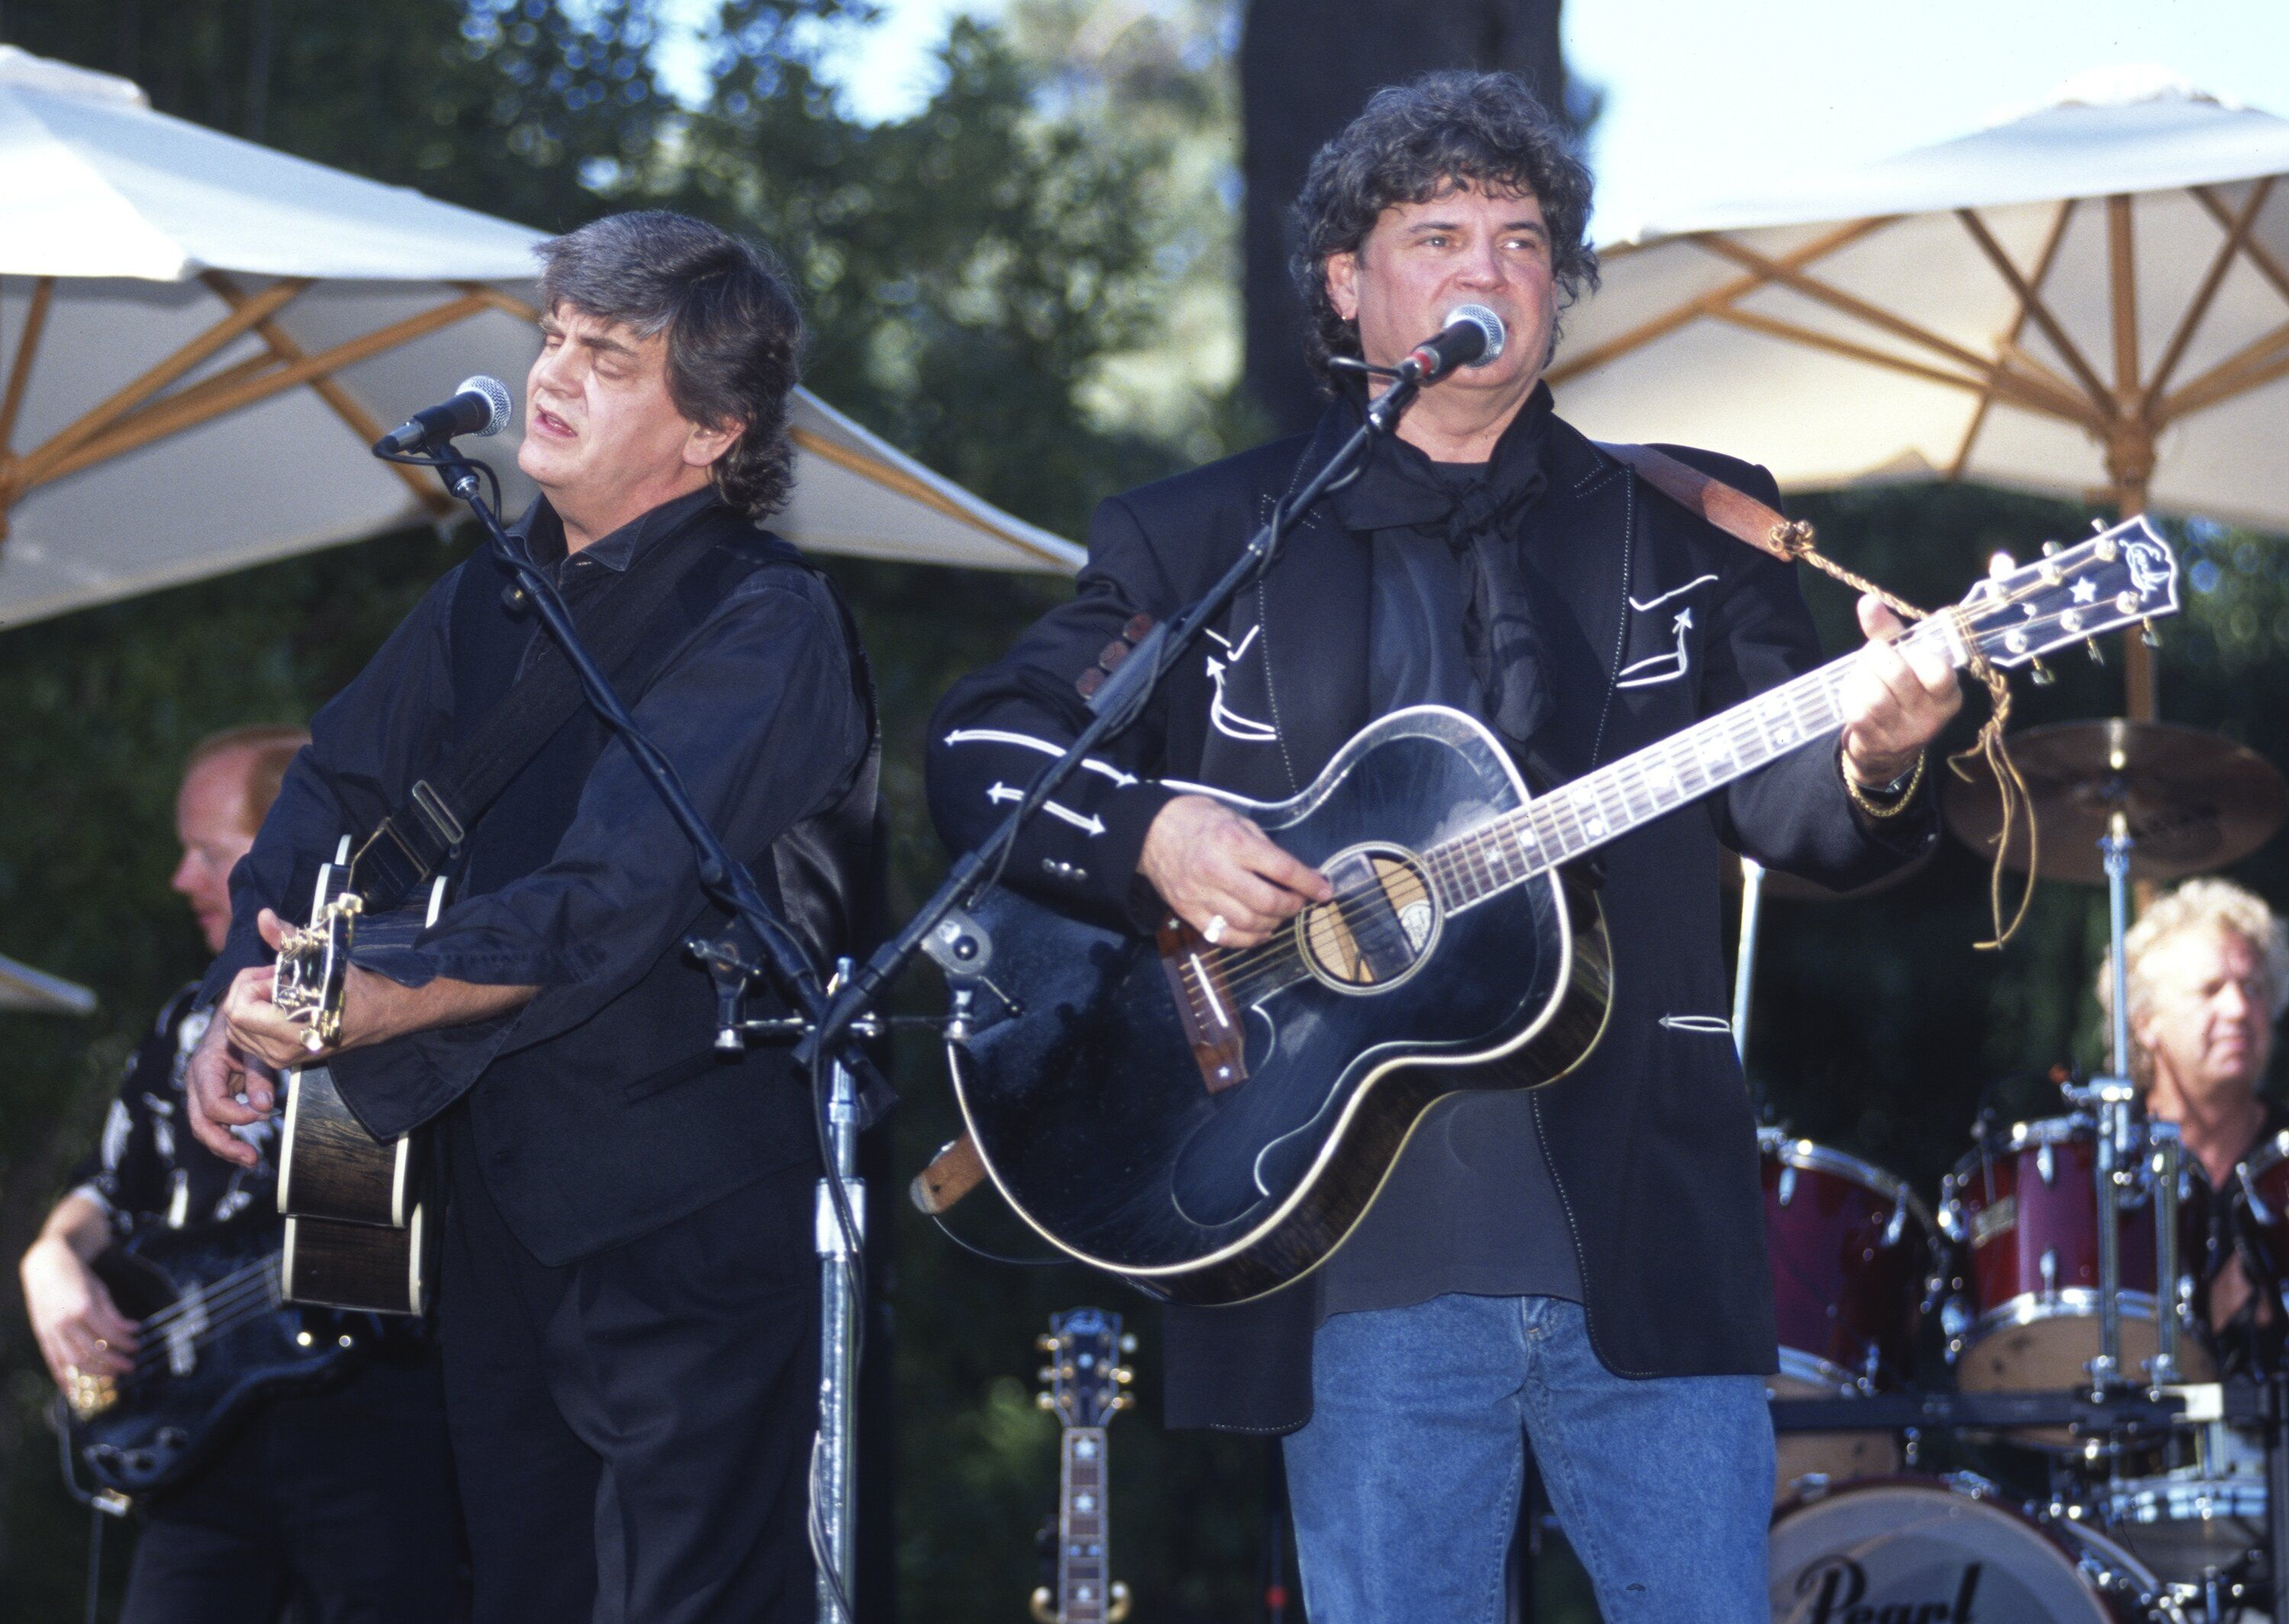 Phil Everly, left, and Don Everly of the Everly Brothers perform at Villa Montalvo on July 30, 1995 in Saratoga, California.